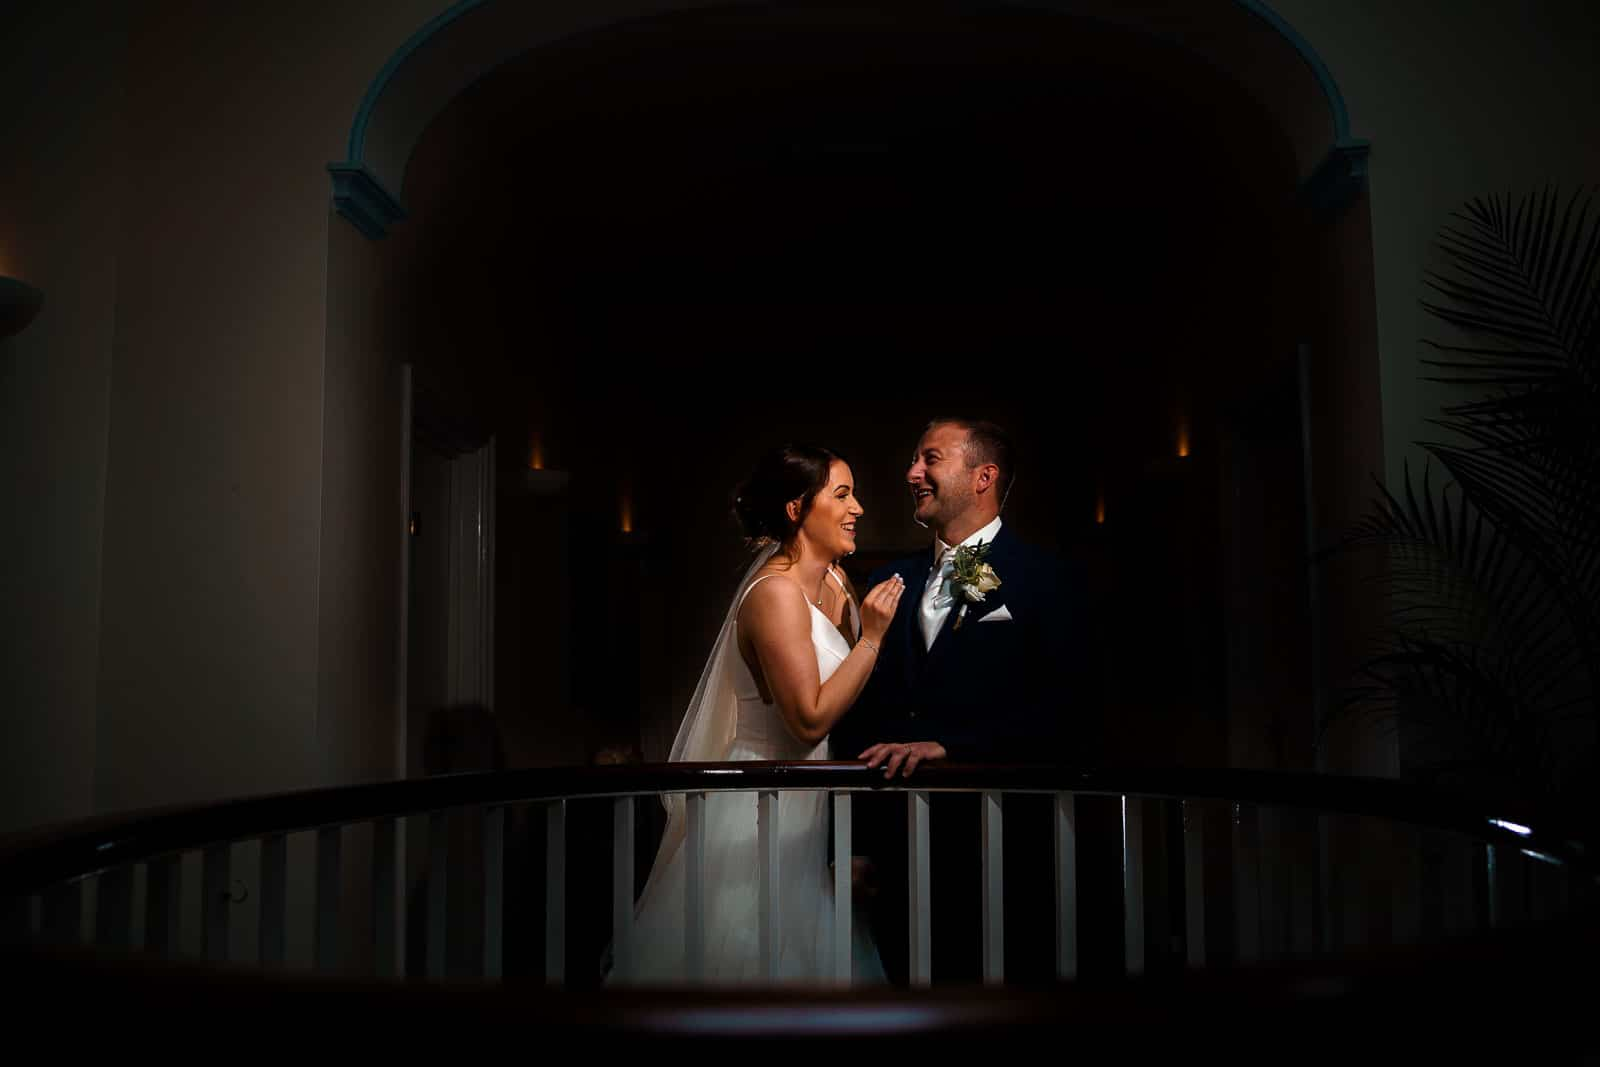 Walnutt inn weding photography in northampton with the couple laughing and the photographer using OCF to illuminate them